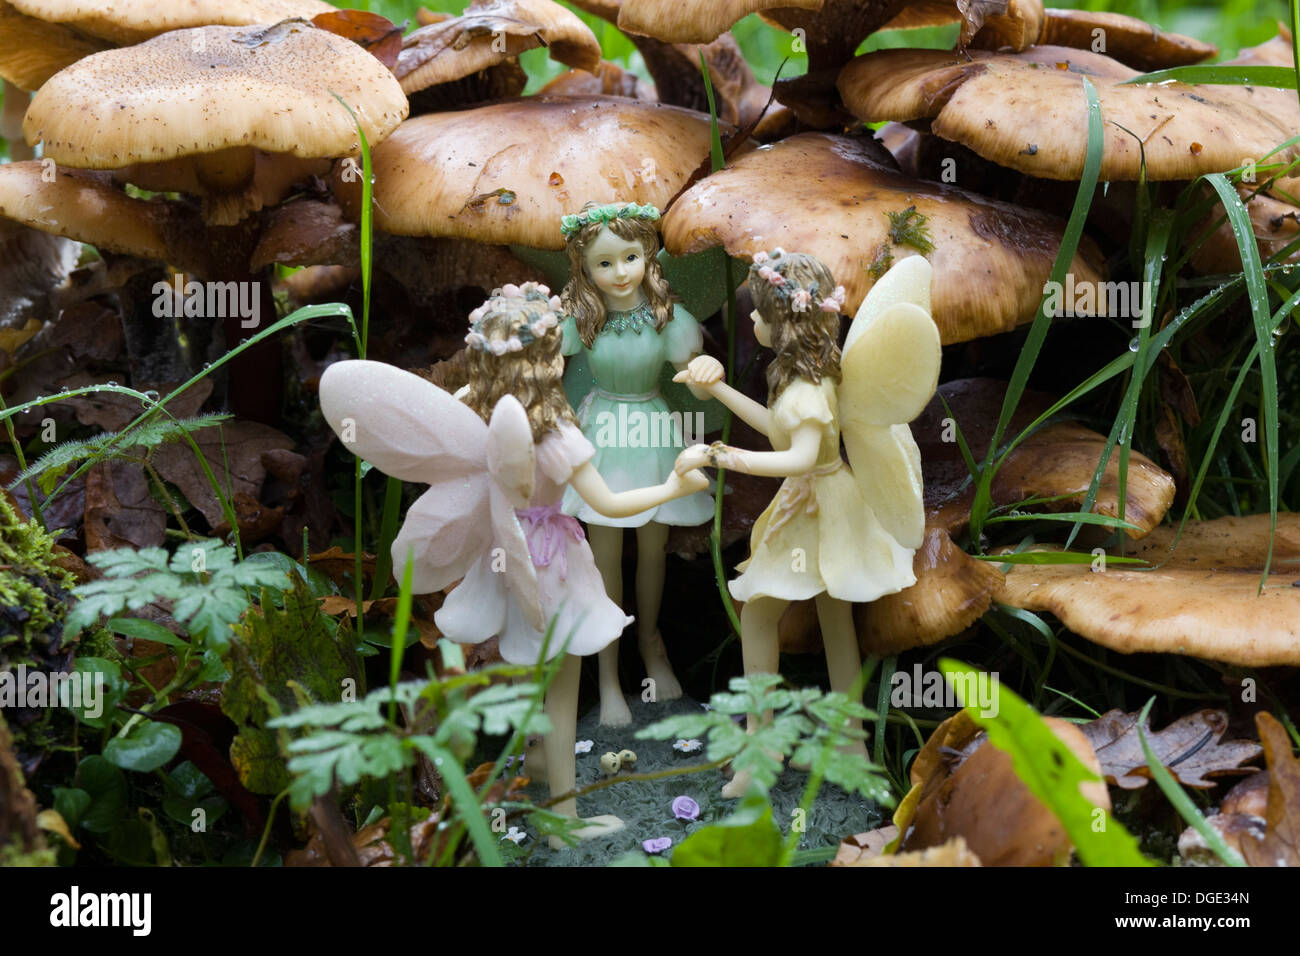 Fairies in the Garden Holding Hands in amongst Wild Mushrooms - Stock Image